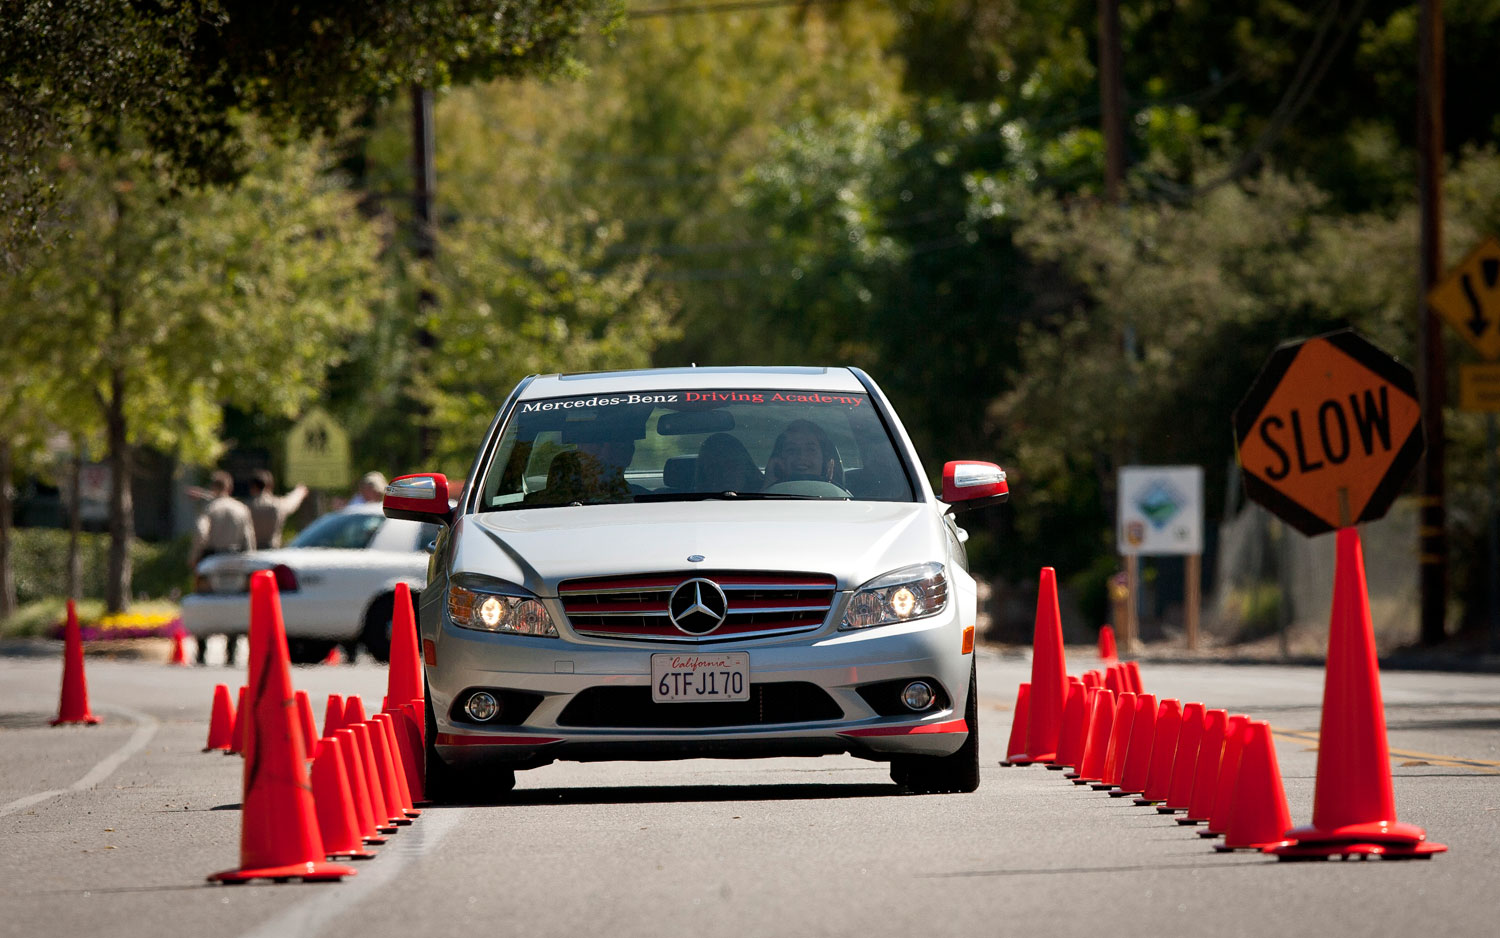 Higher Education: Mercedes Benz Driving Academy